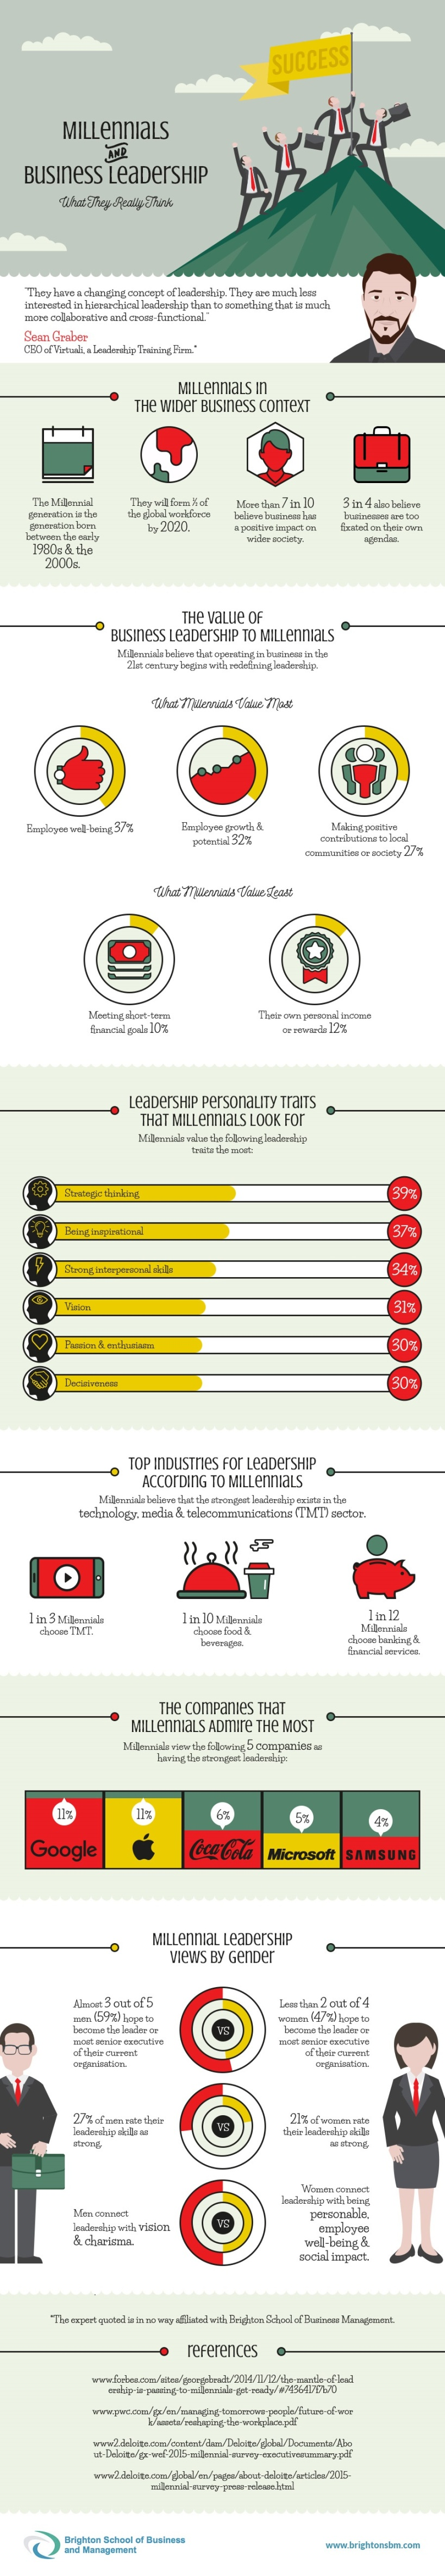 Millennials-and-Business-Leadership-Infographic